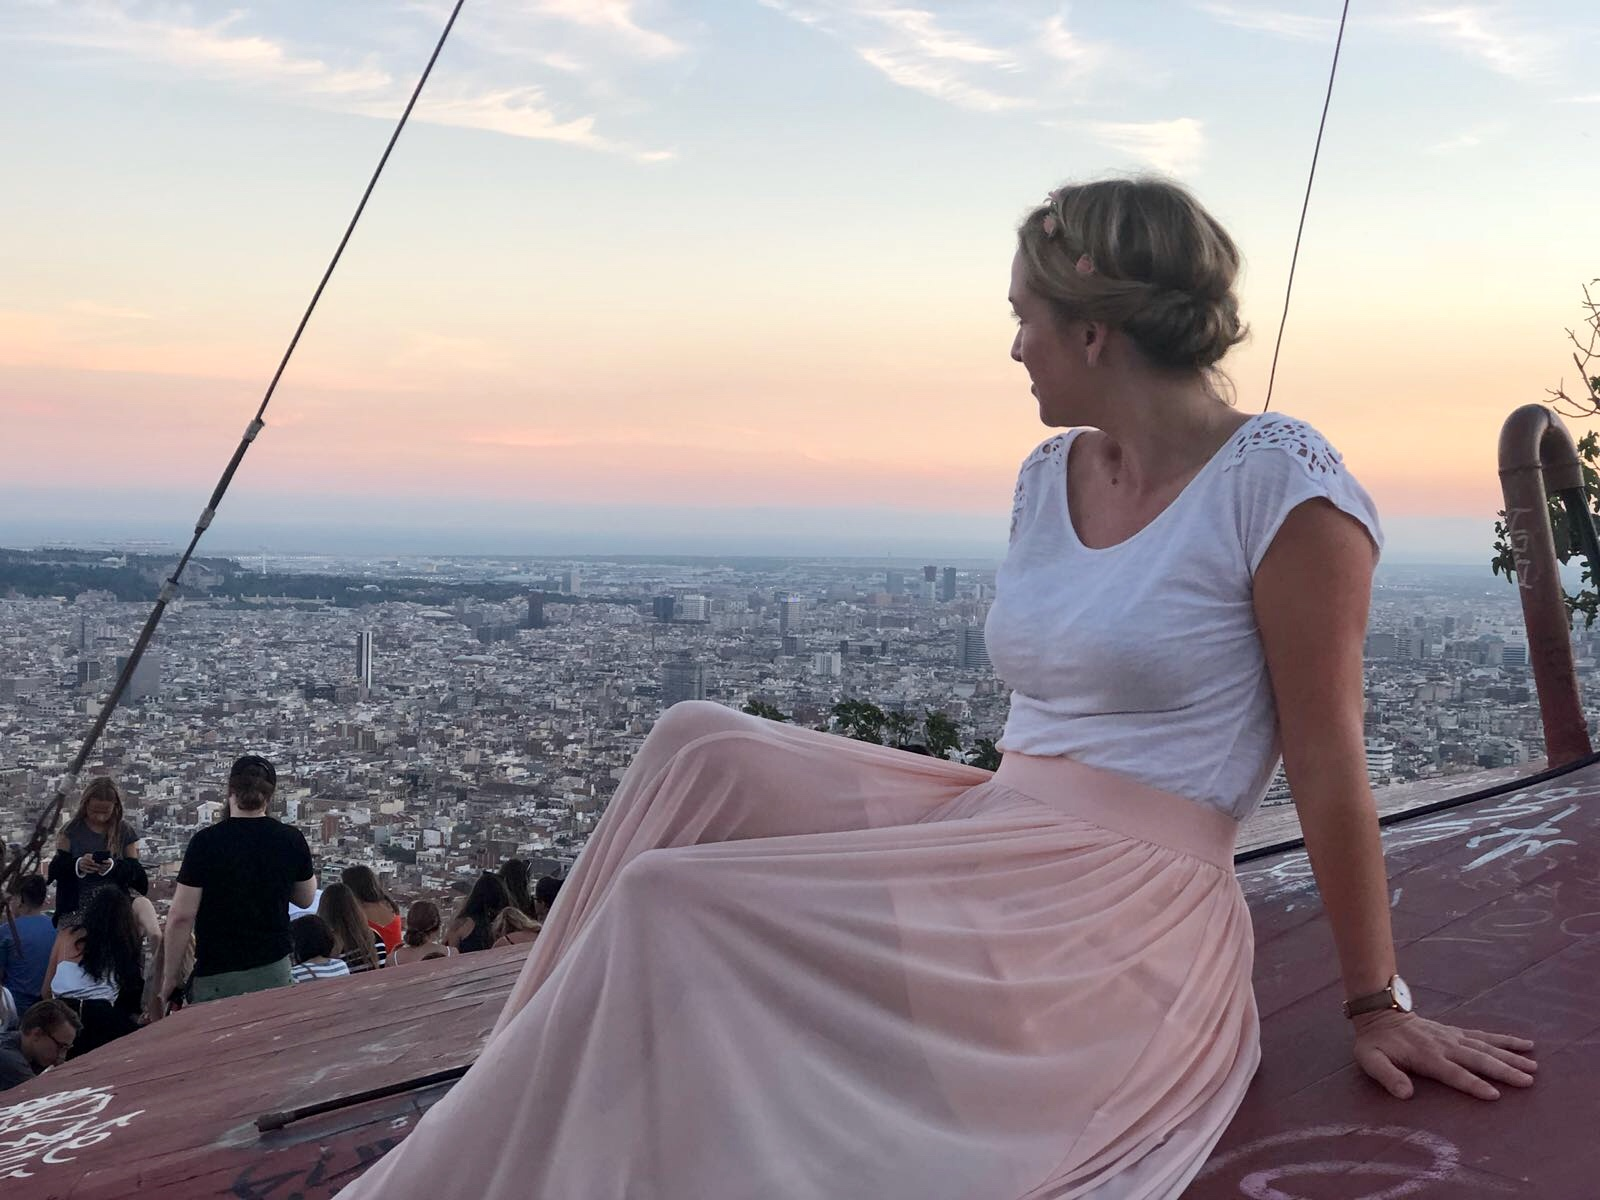 Barcelona travel tips with my 10 tips for your city break